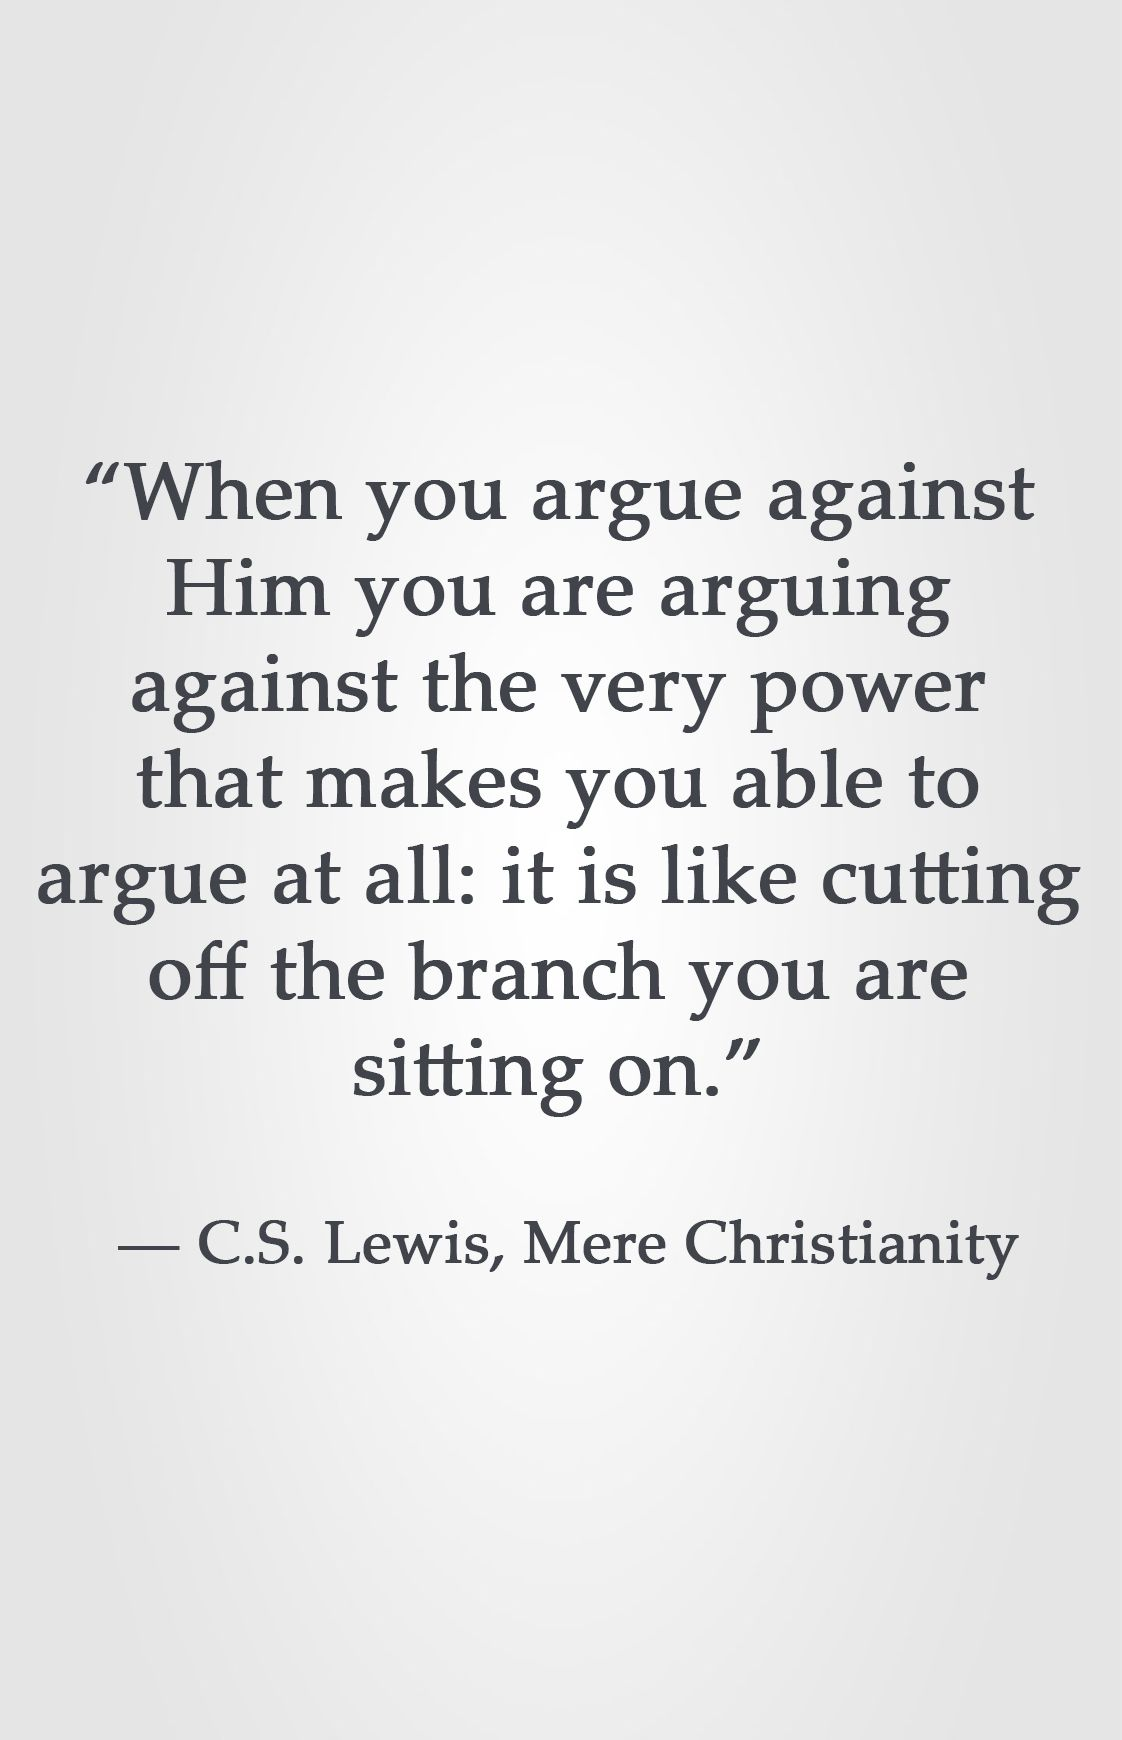 How to Argue Against Christianity